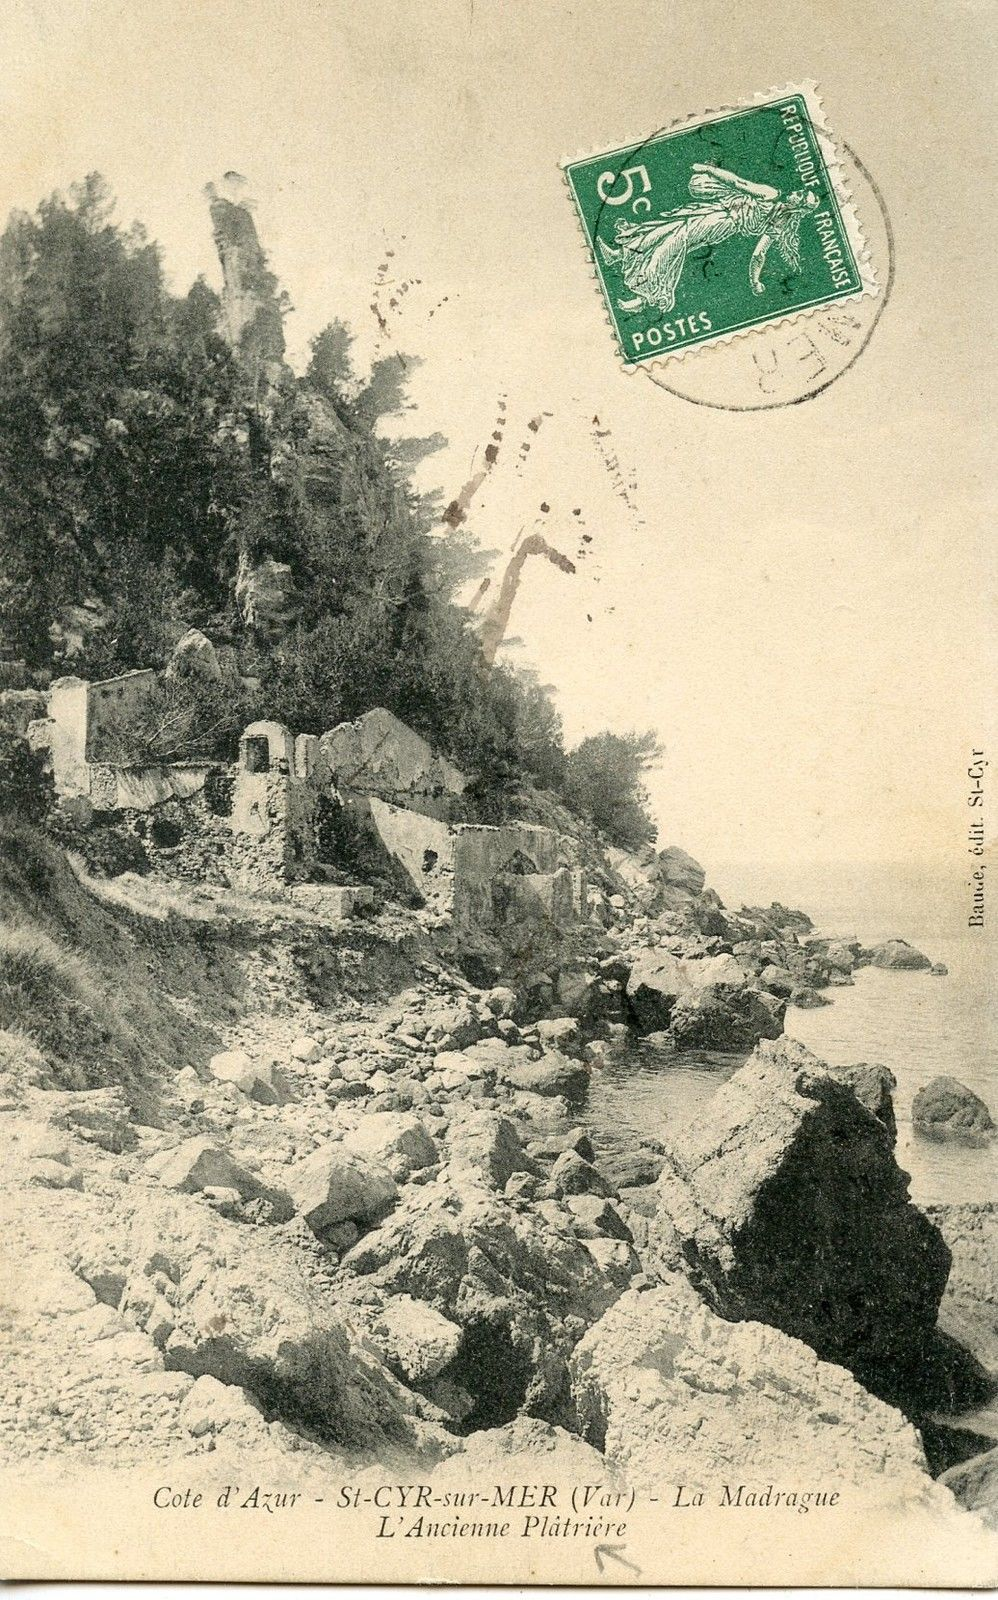 Carte Postale Le Var Saint Cyr Sur Mer La Madrague Ancienne Platriere Ebay Carte Postale La Madrague Fond D Ecran Pop Art